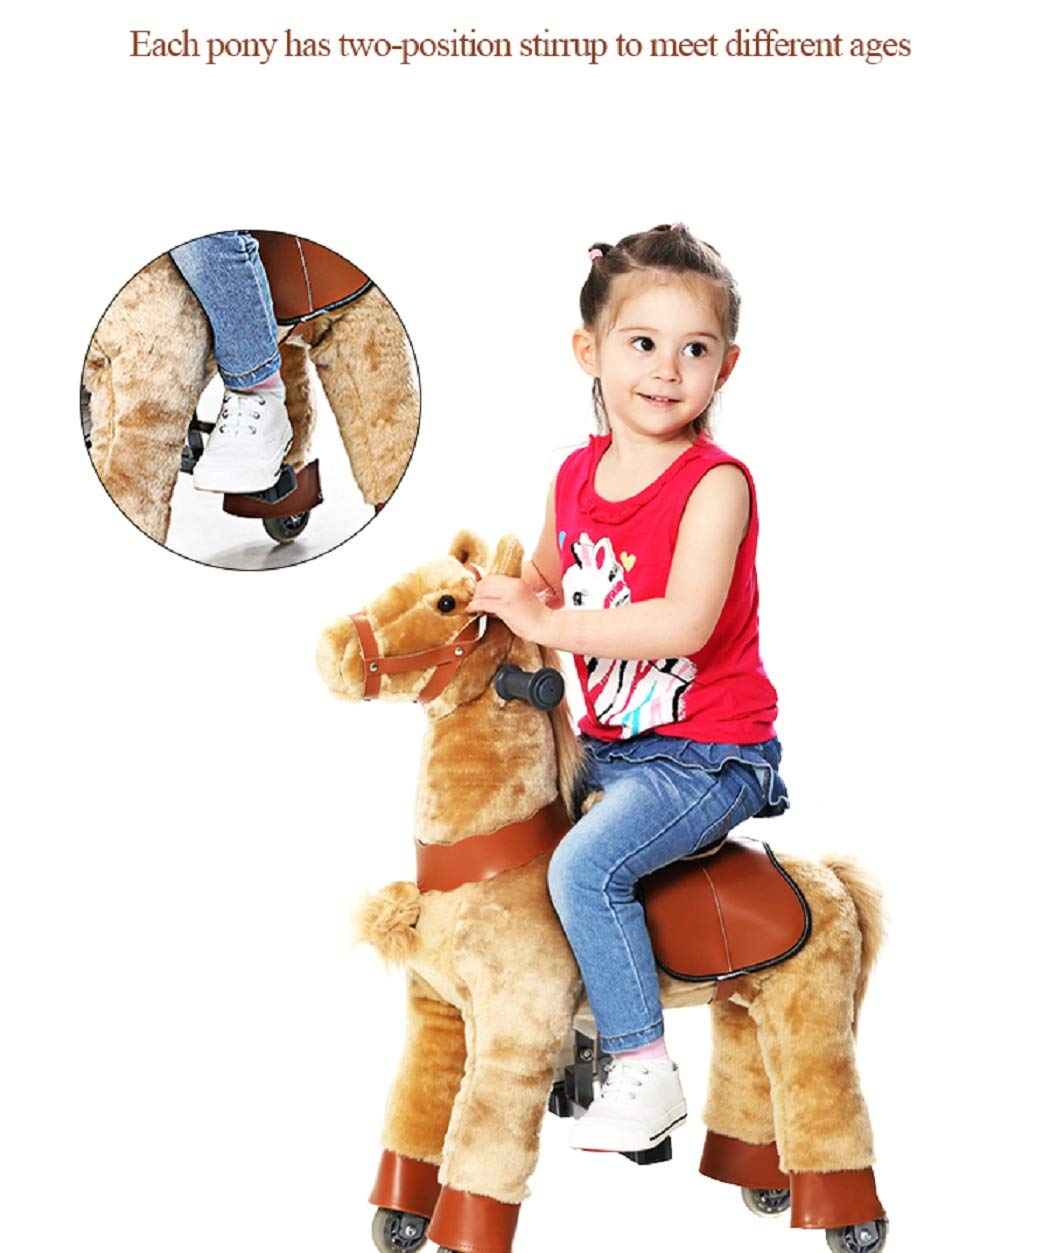 Brown Horse, Small Happy Island Cute Little Pony Foal Giddy Up Ride On Horse Walking Simulated No Battery No Electricity Mechanical Horse Large